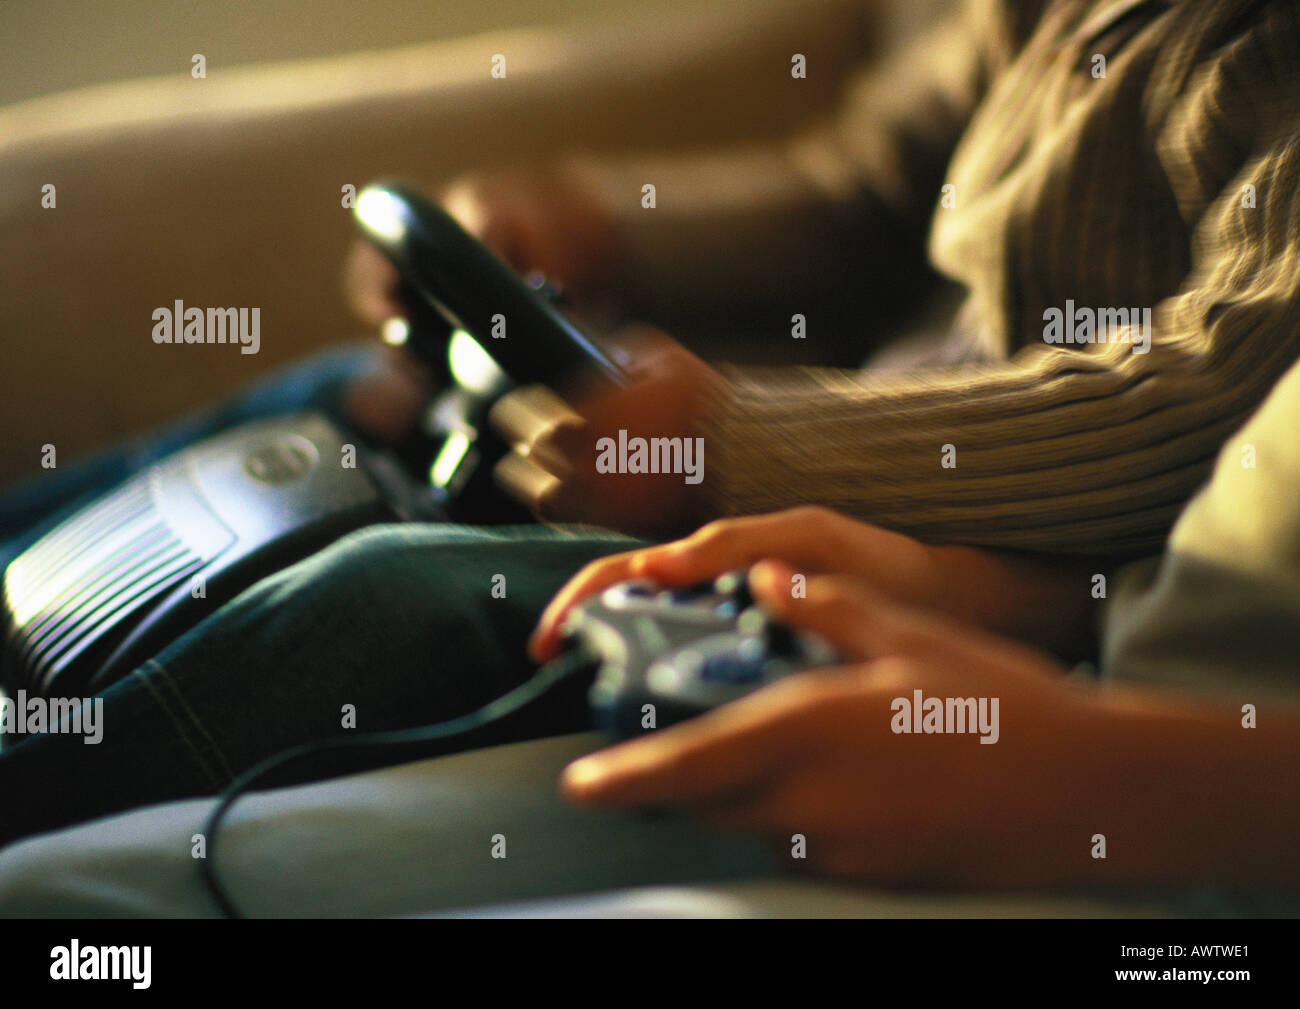 Hands of children playing video game, close up - Stock Image